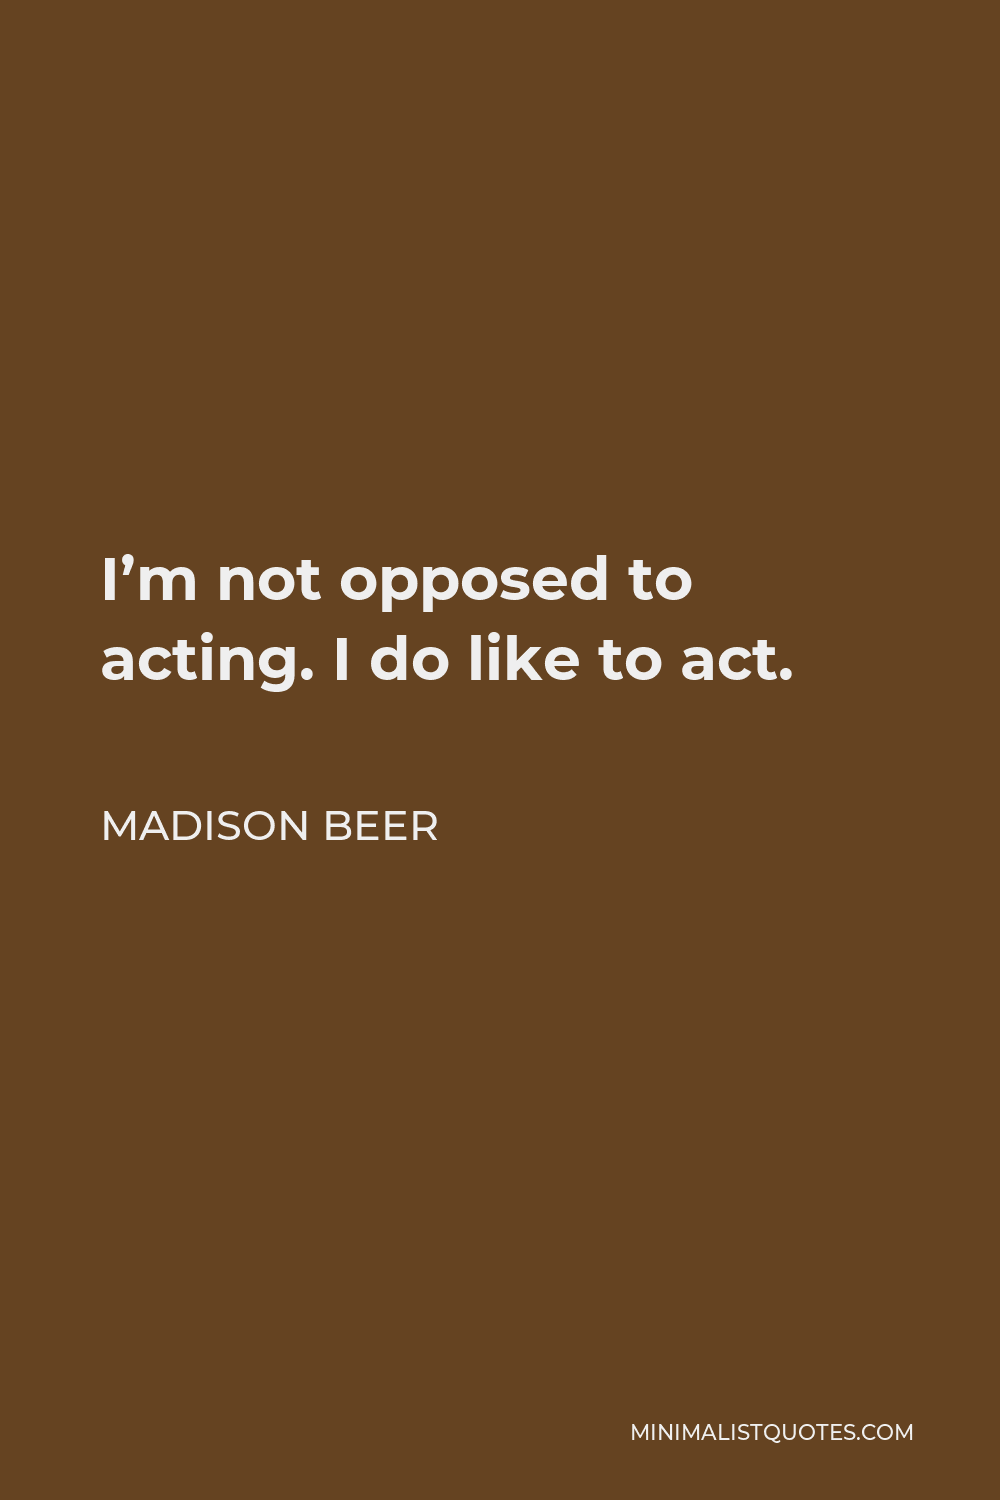 Madison Beer Quote - I'm not opposed to acting. I do like to act.